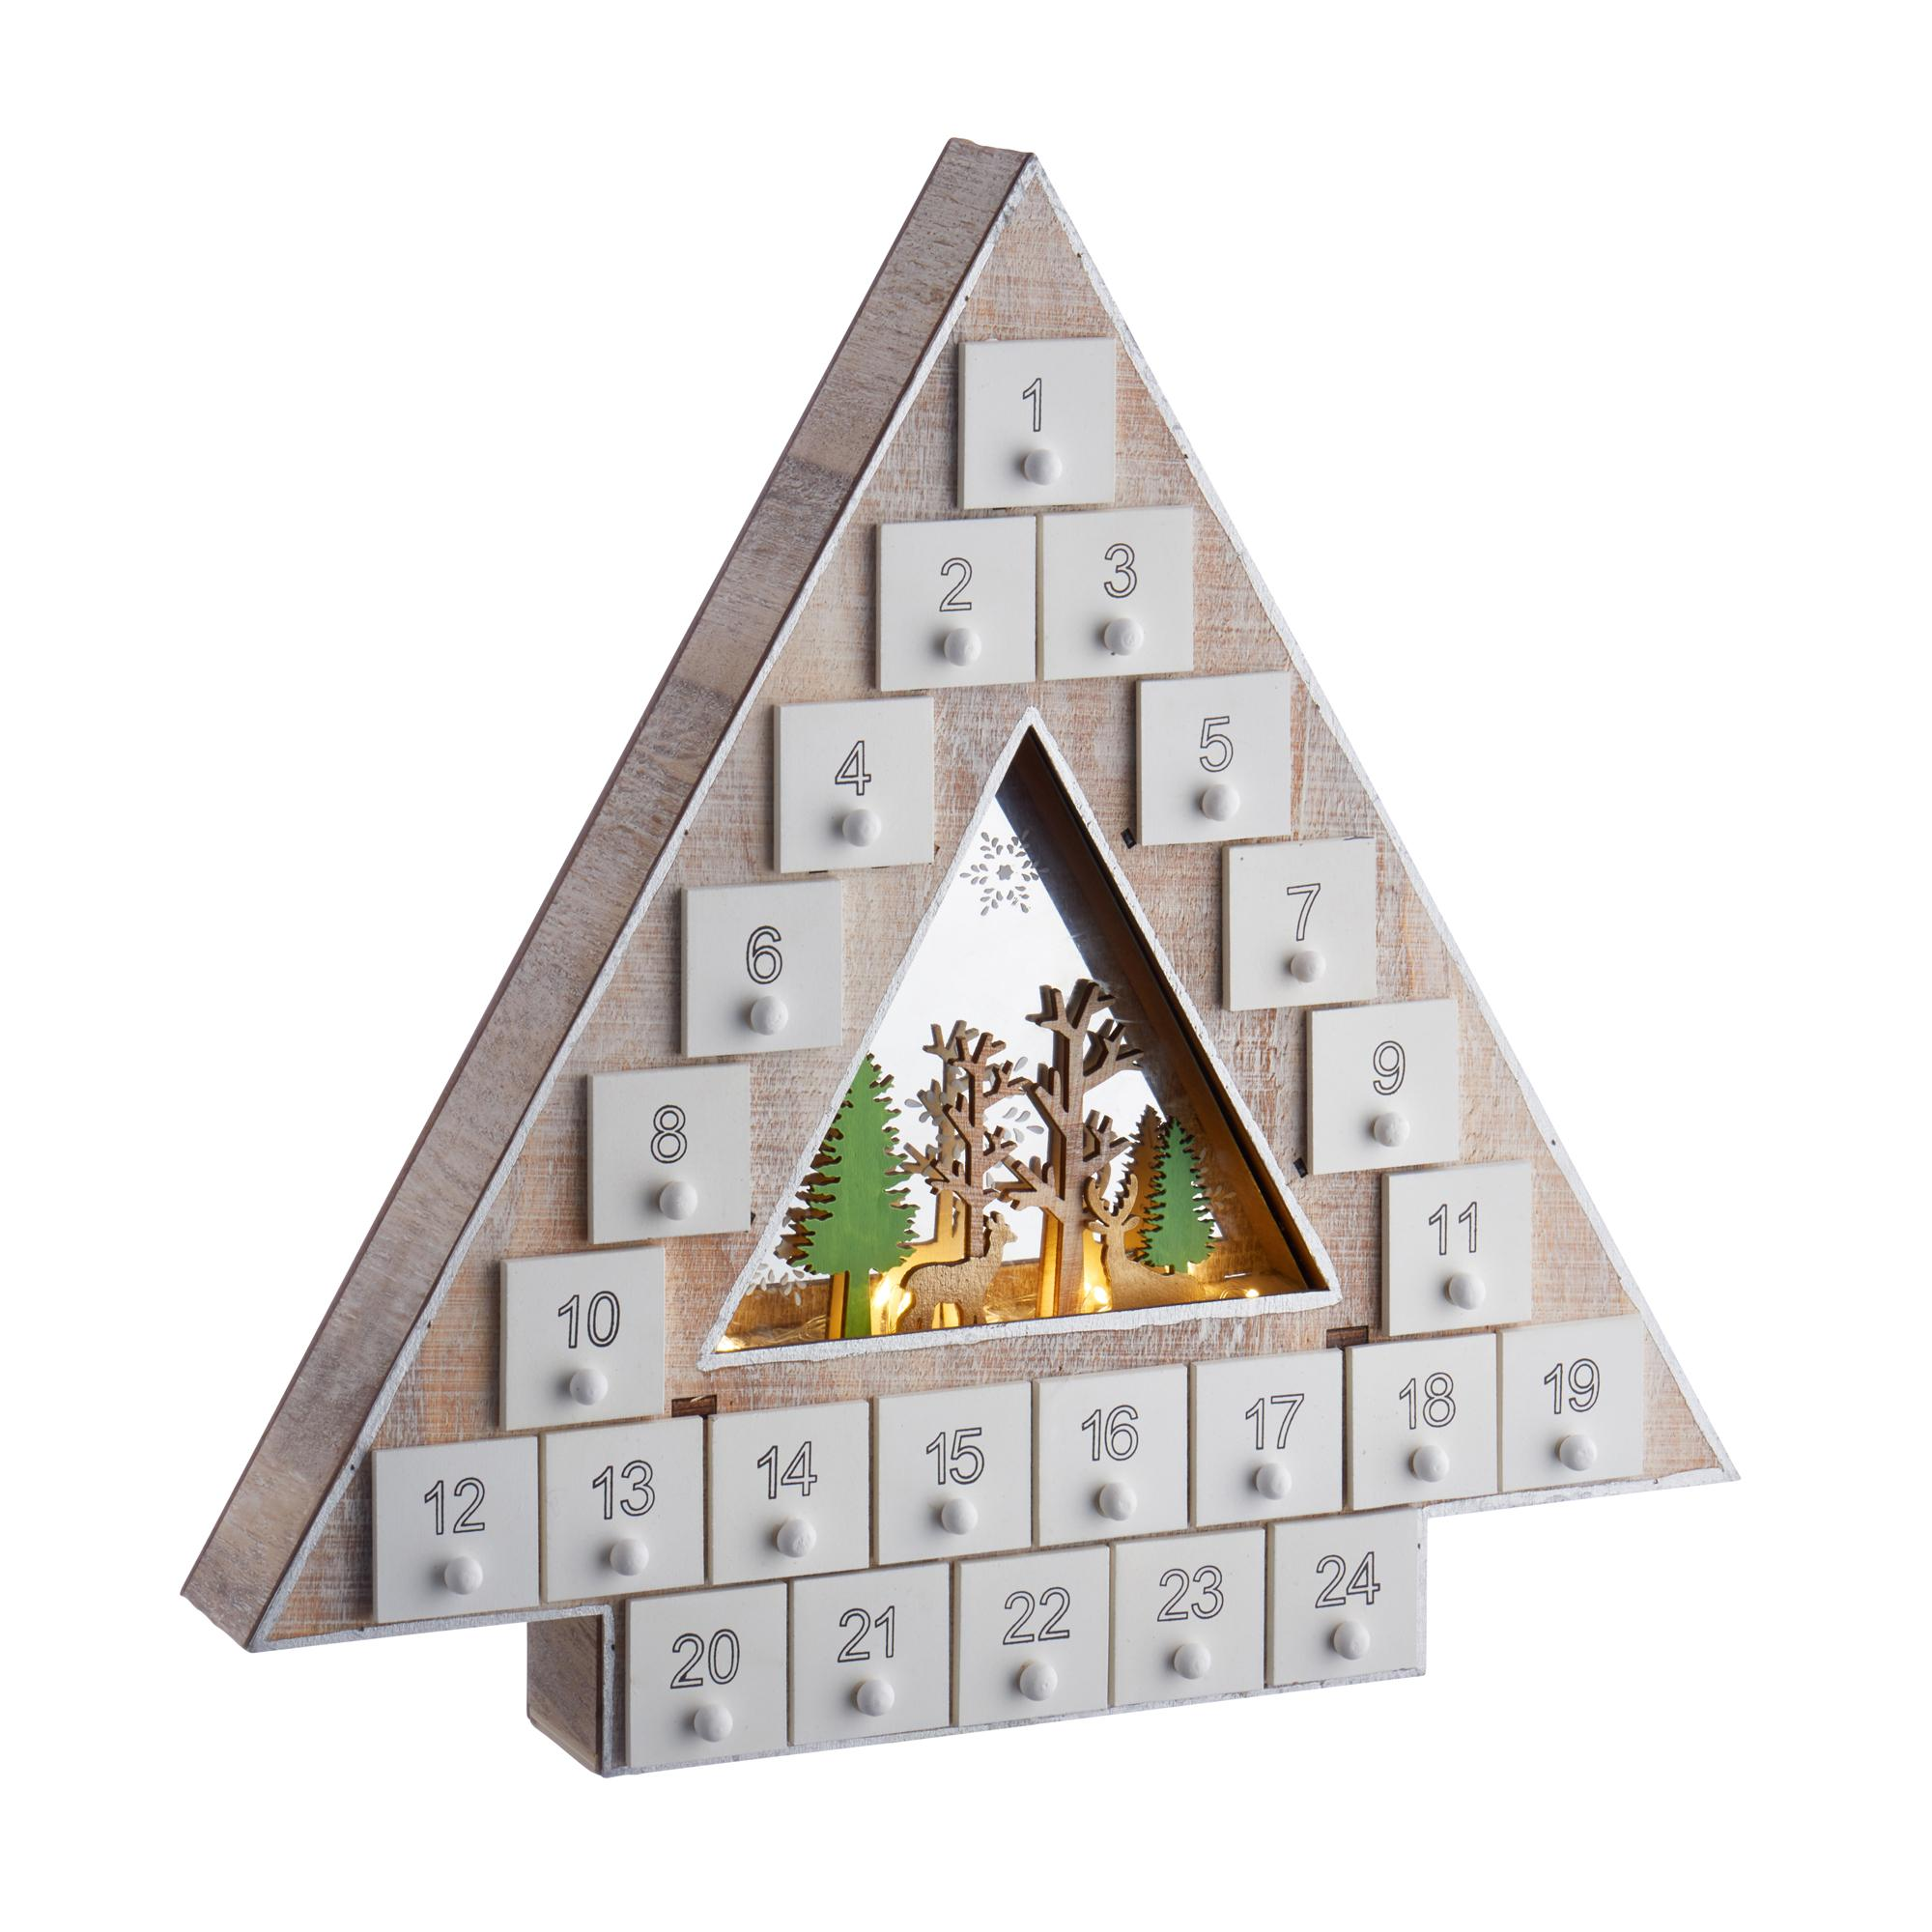 Led Wooden Christmas Tree Advent Calendar Cancer Research Uk Online Shop